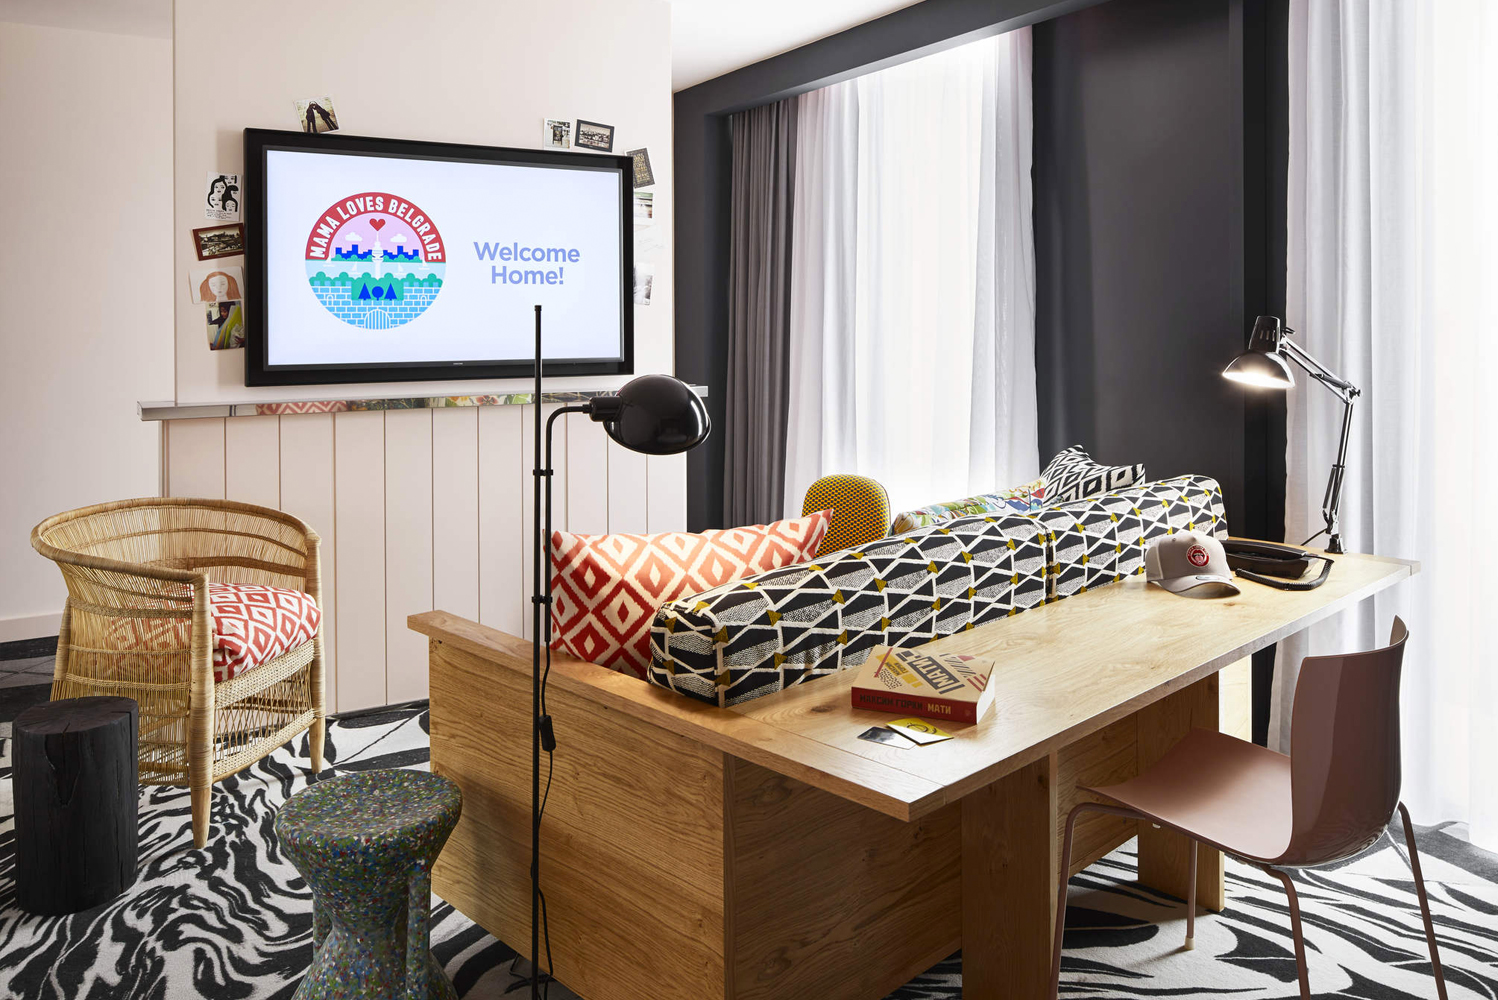 Mama Shelter opened its seventh property along Ulica Kneza Mihaila in central Belgrade.